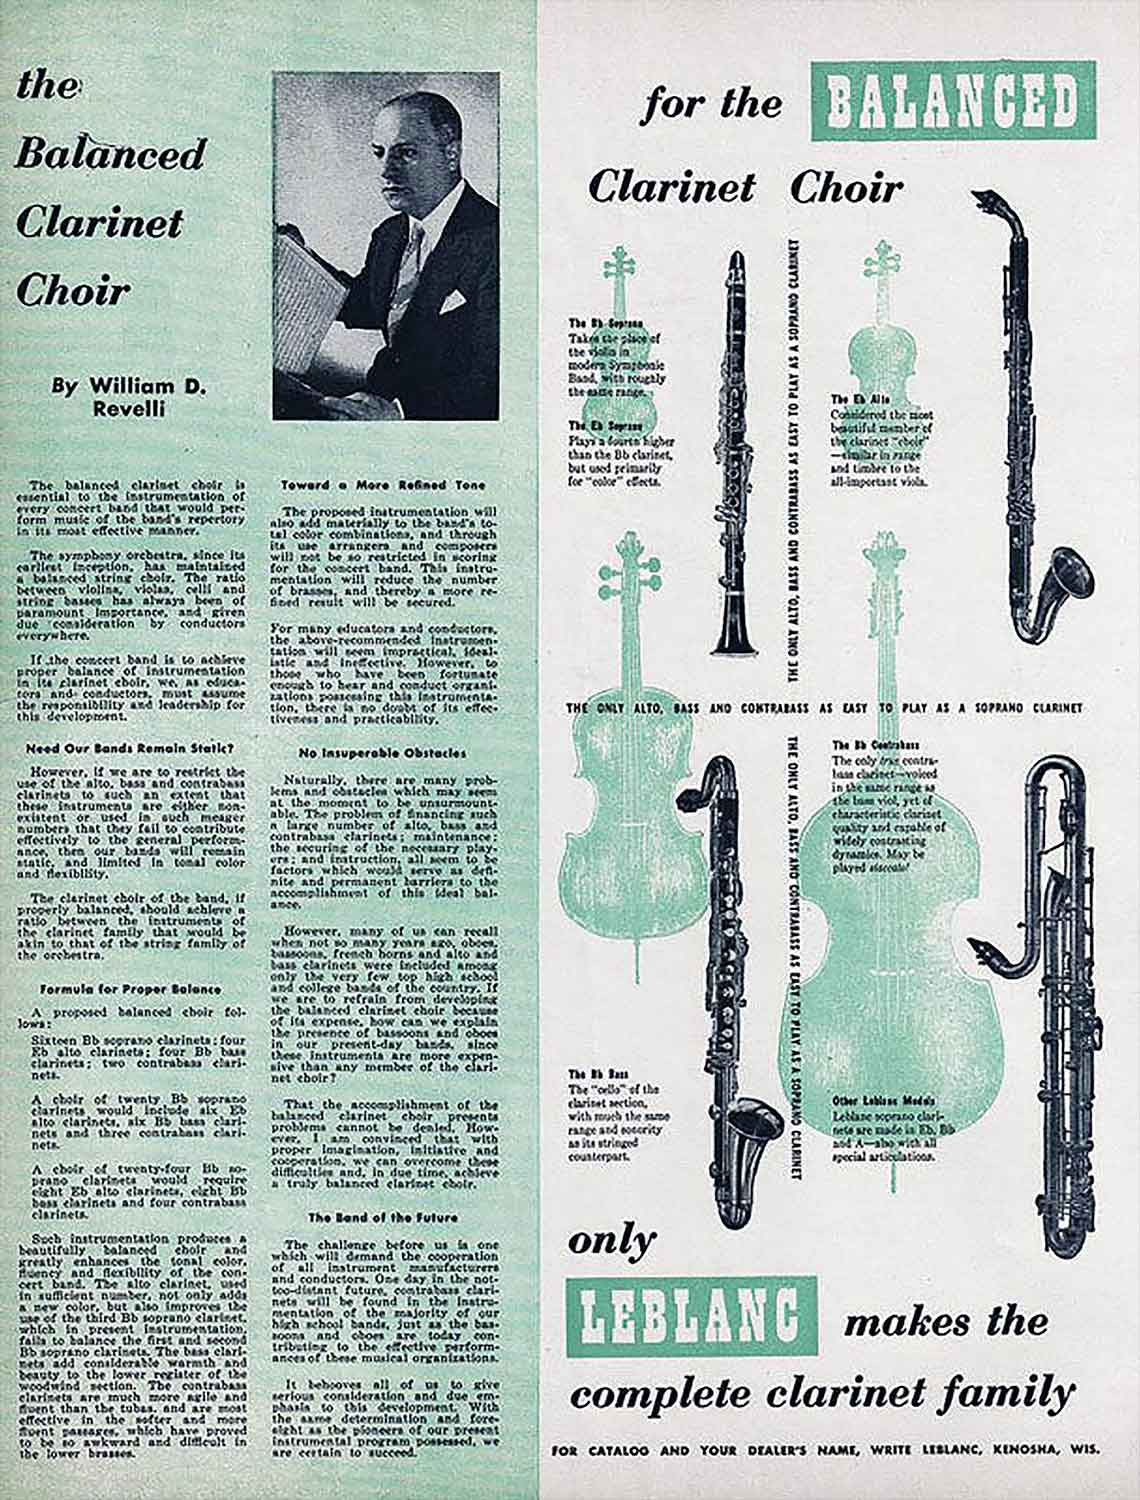 Valentin cases : Leblanc clarinets family.